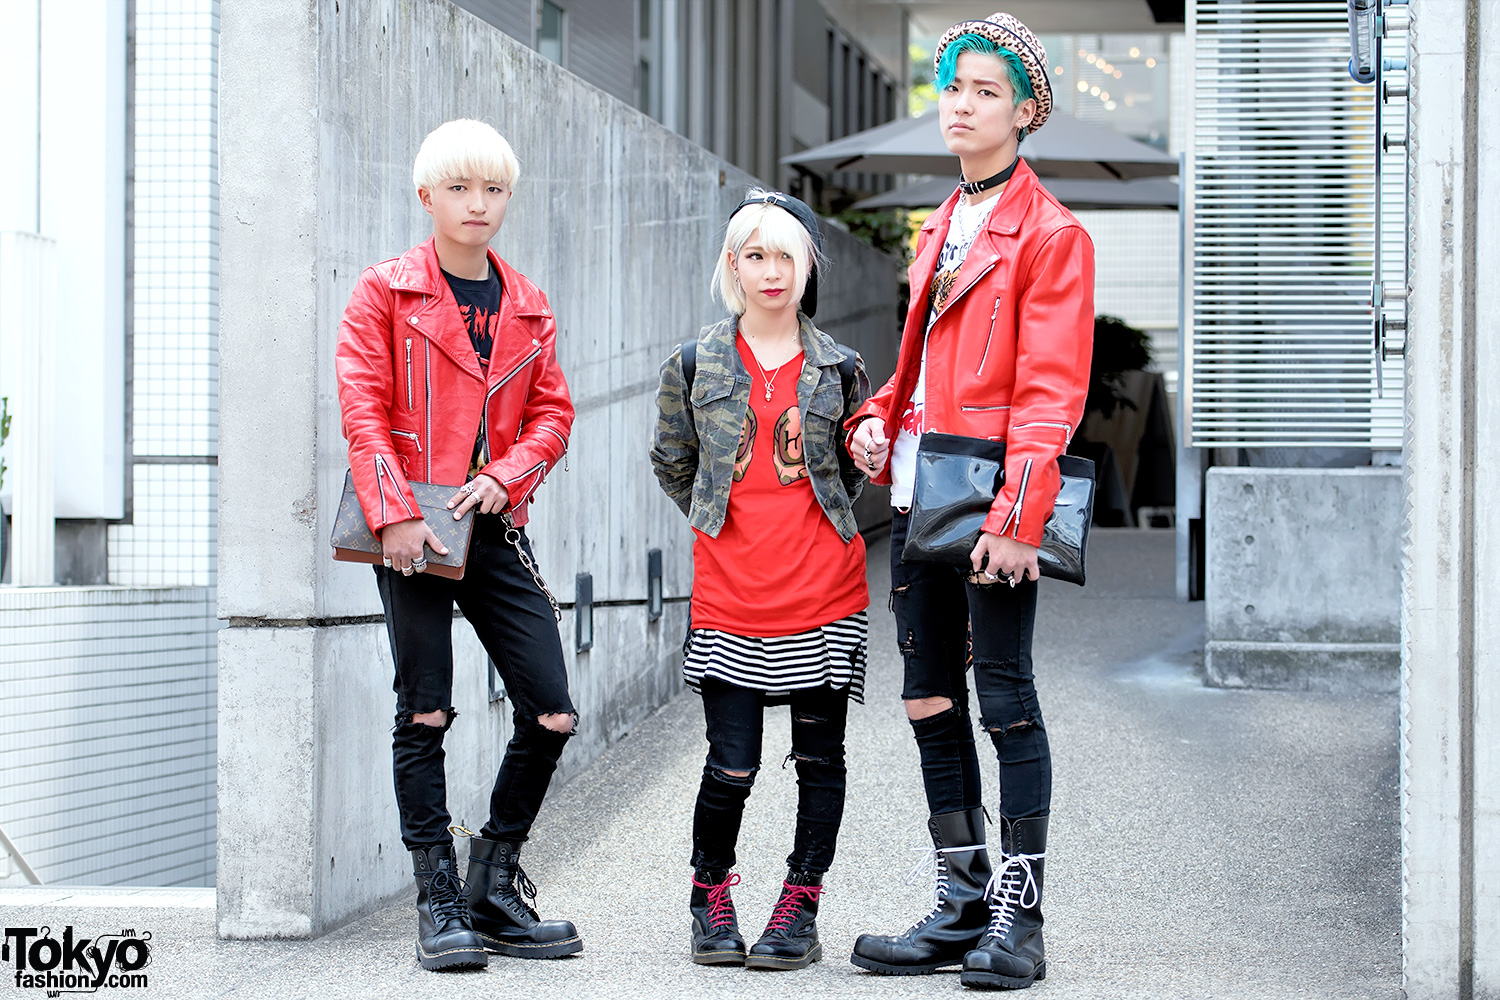 52297fb26bdb Harajuku Punk Styles w  666 Japan Leather Jackets